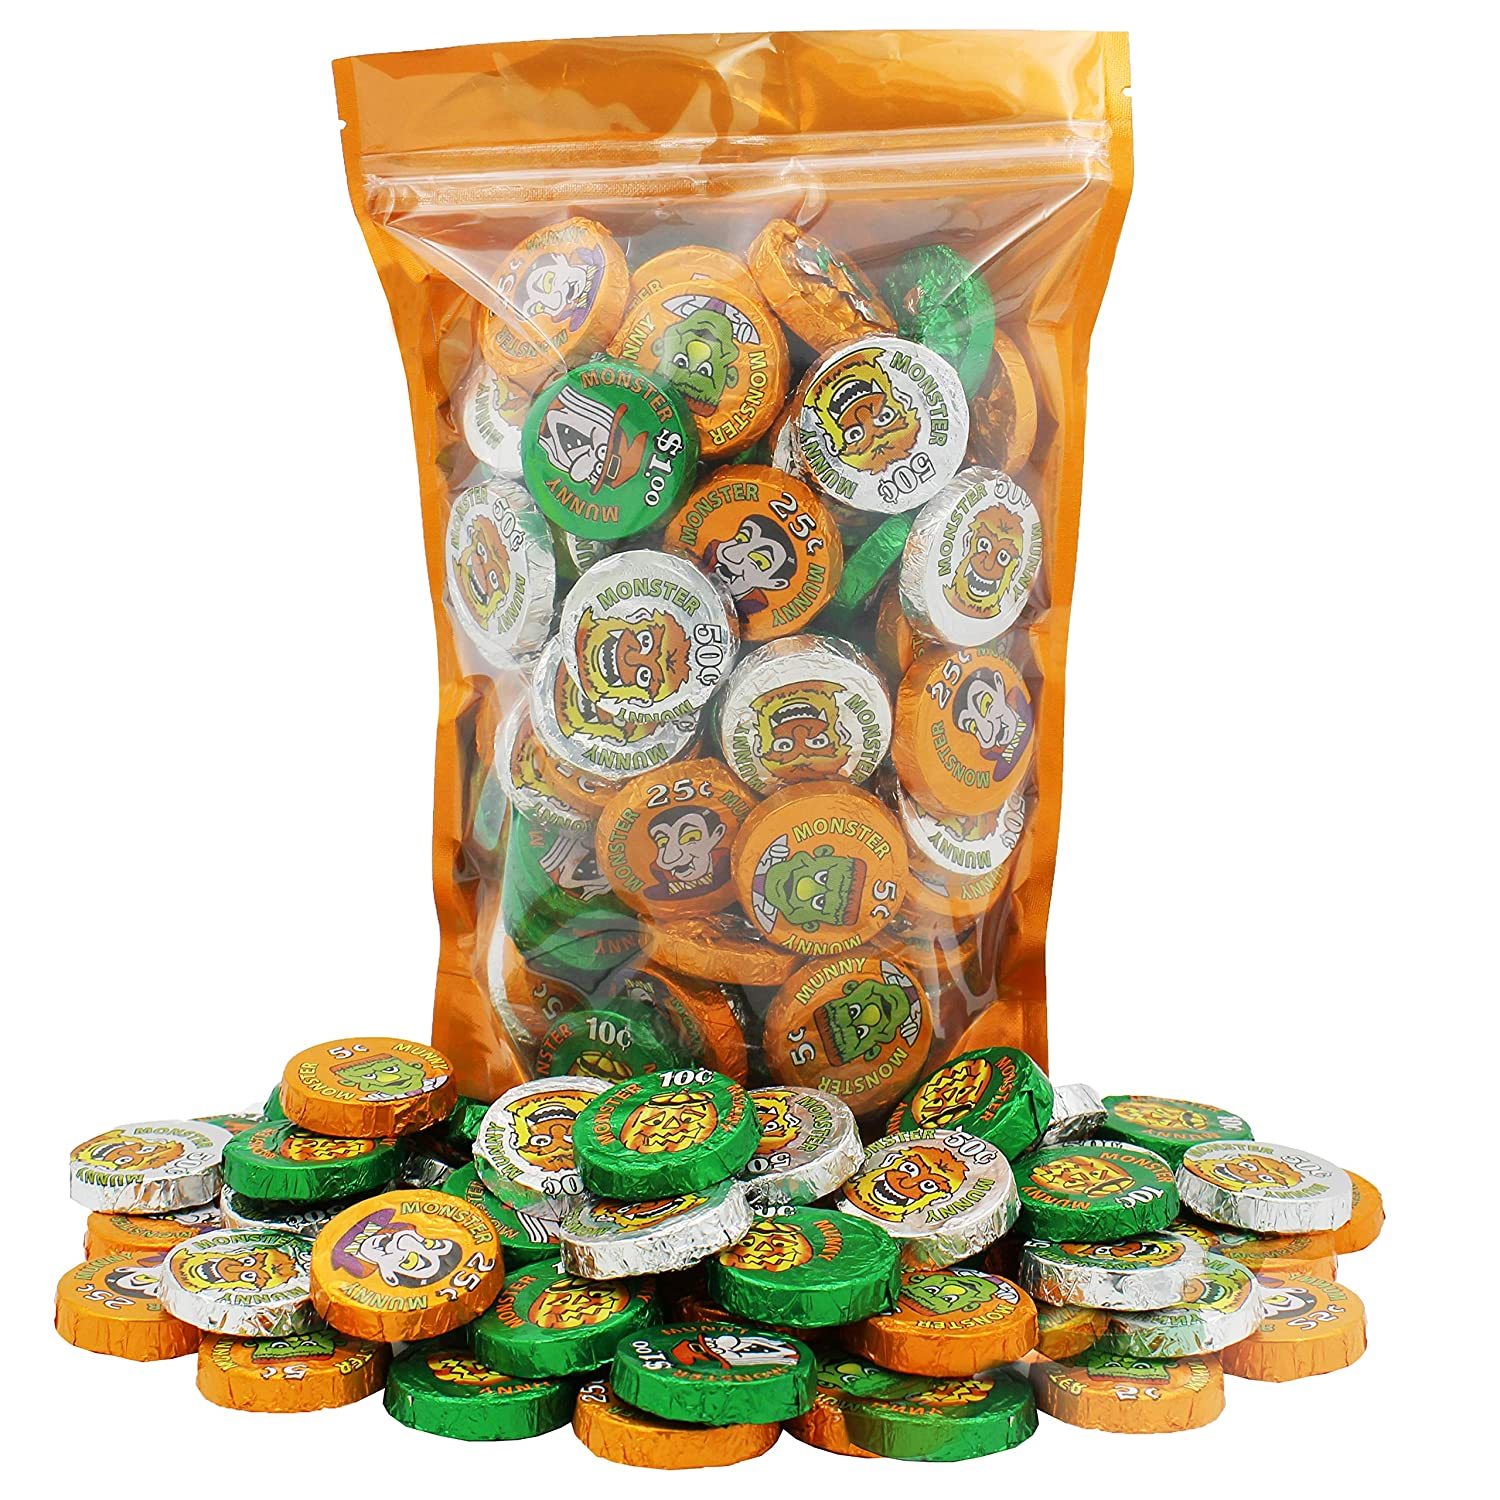 Halloween Chocolate Monster Money Coins Munny, Milk Chocolate Trick-Or-Treat Party Bag Fillers, Individually Wrapped in Orange, Green, Silver Coin Design Foils, Kosher OU-D (18 Pieces)